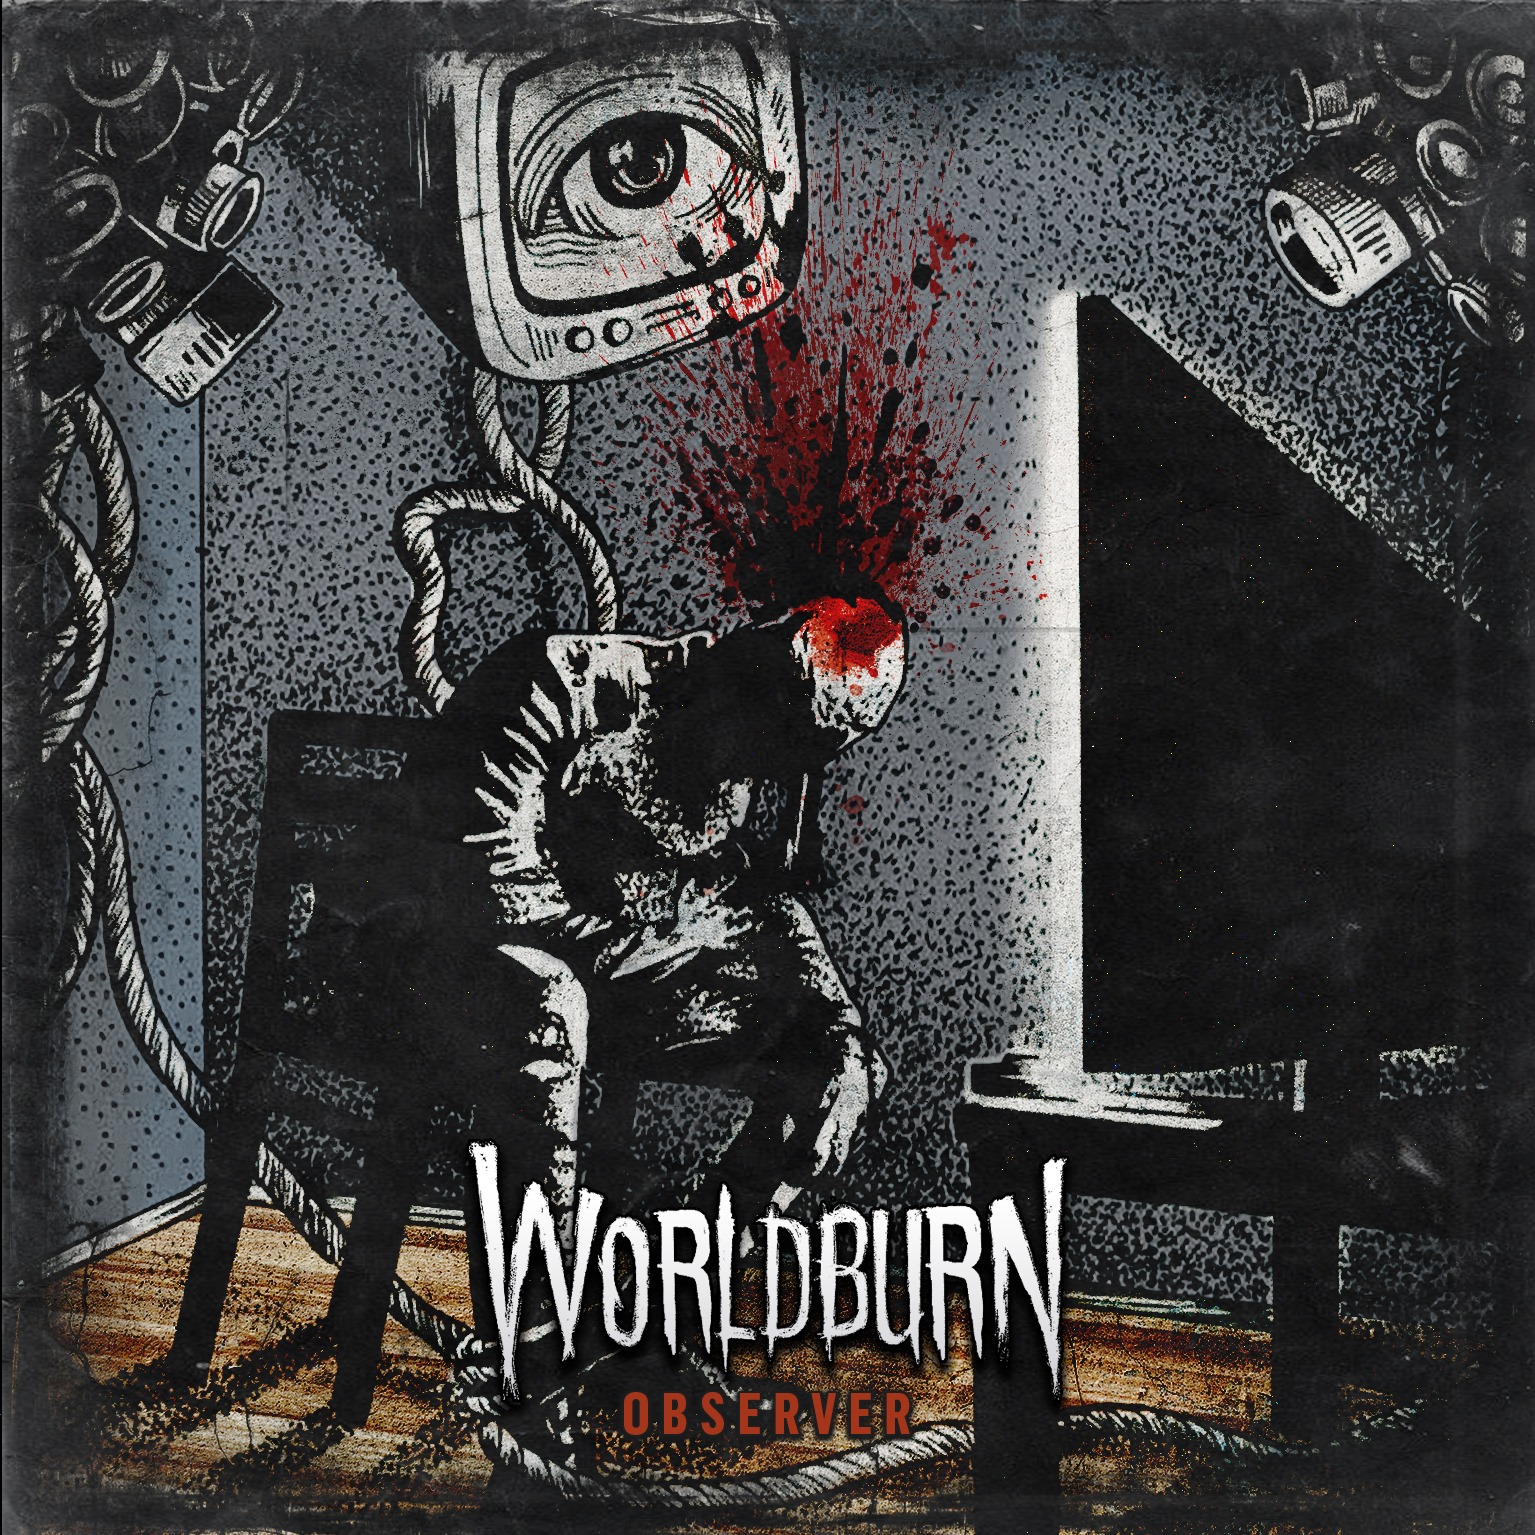 Worldburn CD:n kansi